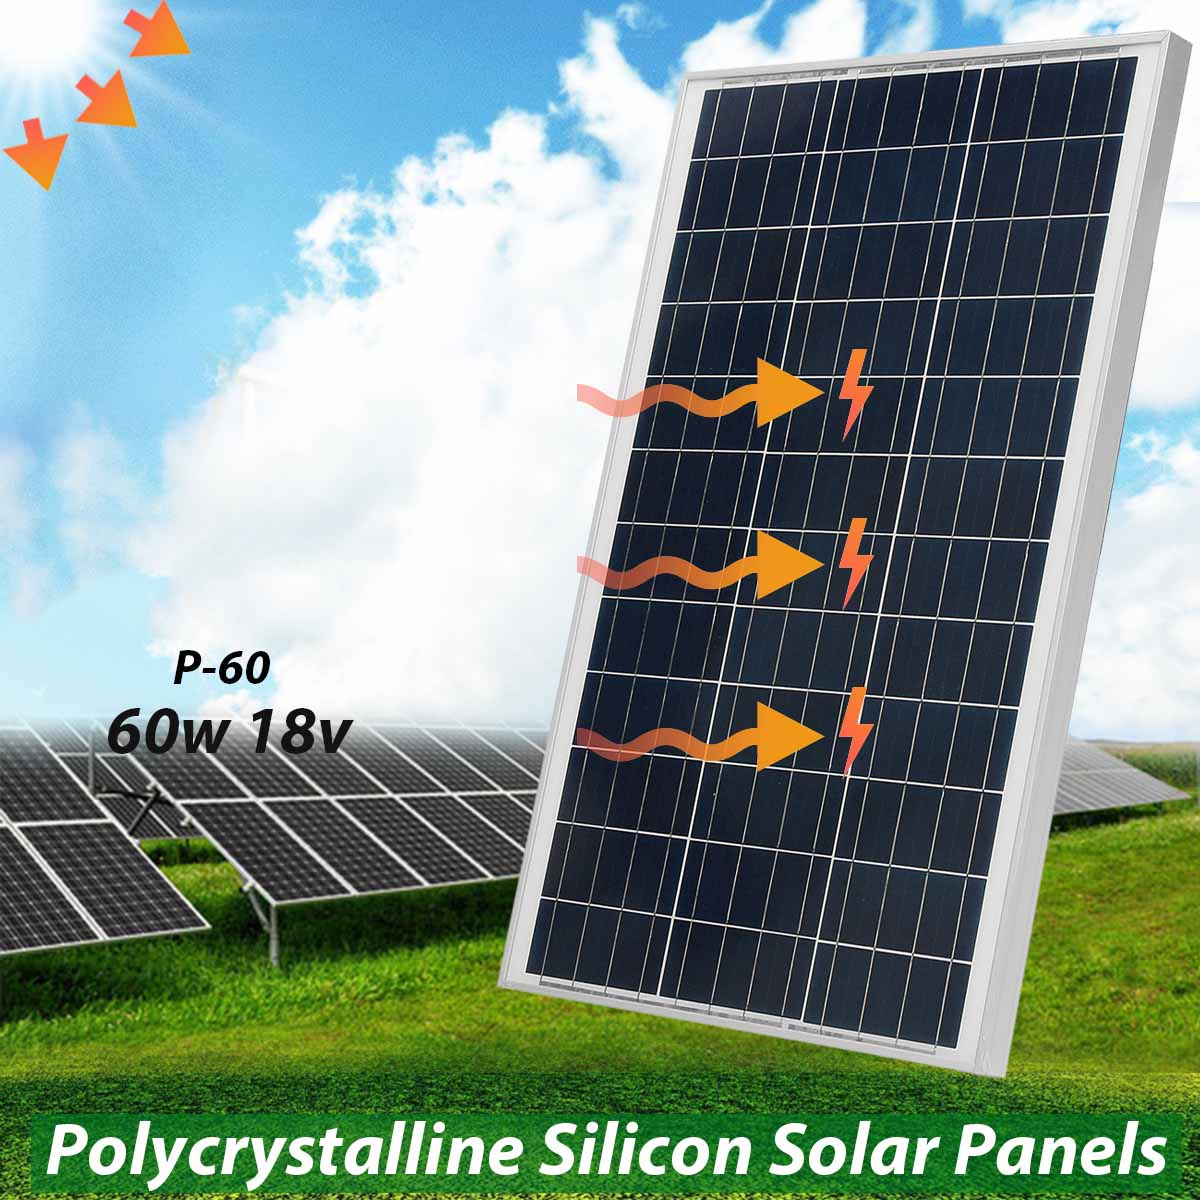 цена на LEORY 75w 18v Solar Panel Polycrystalline Silicon Solar Power System Supply With Glass Bearing Plate Suitable For Car Battery